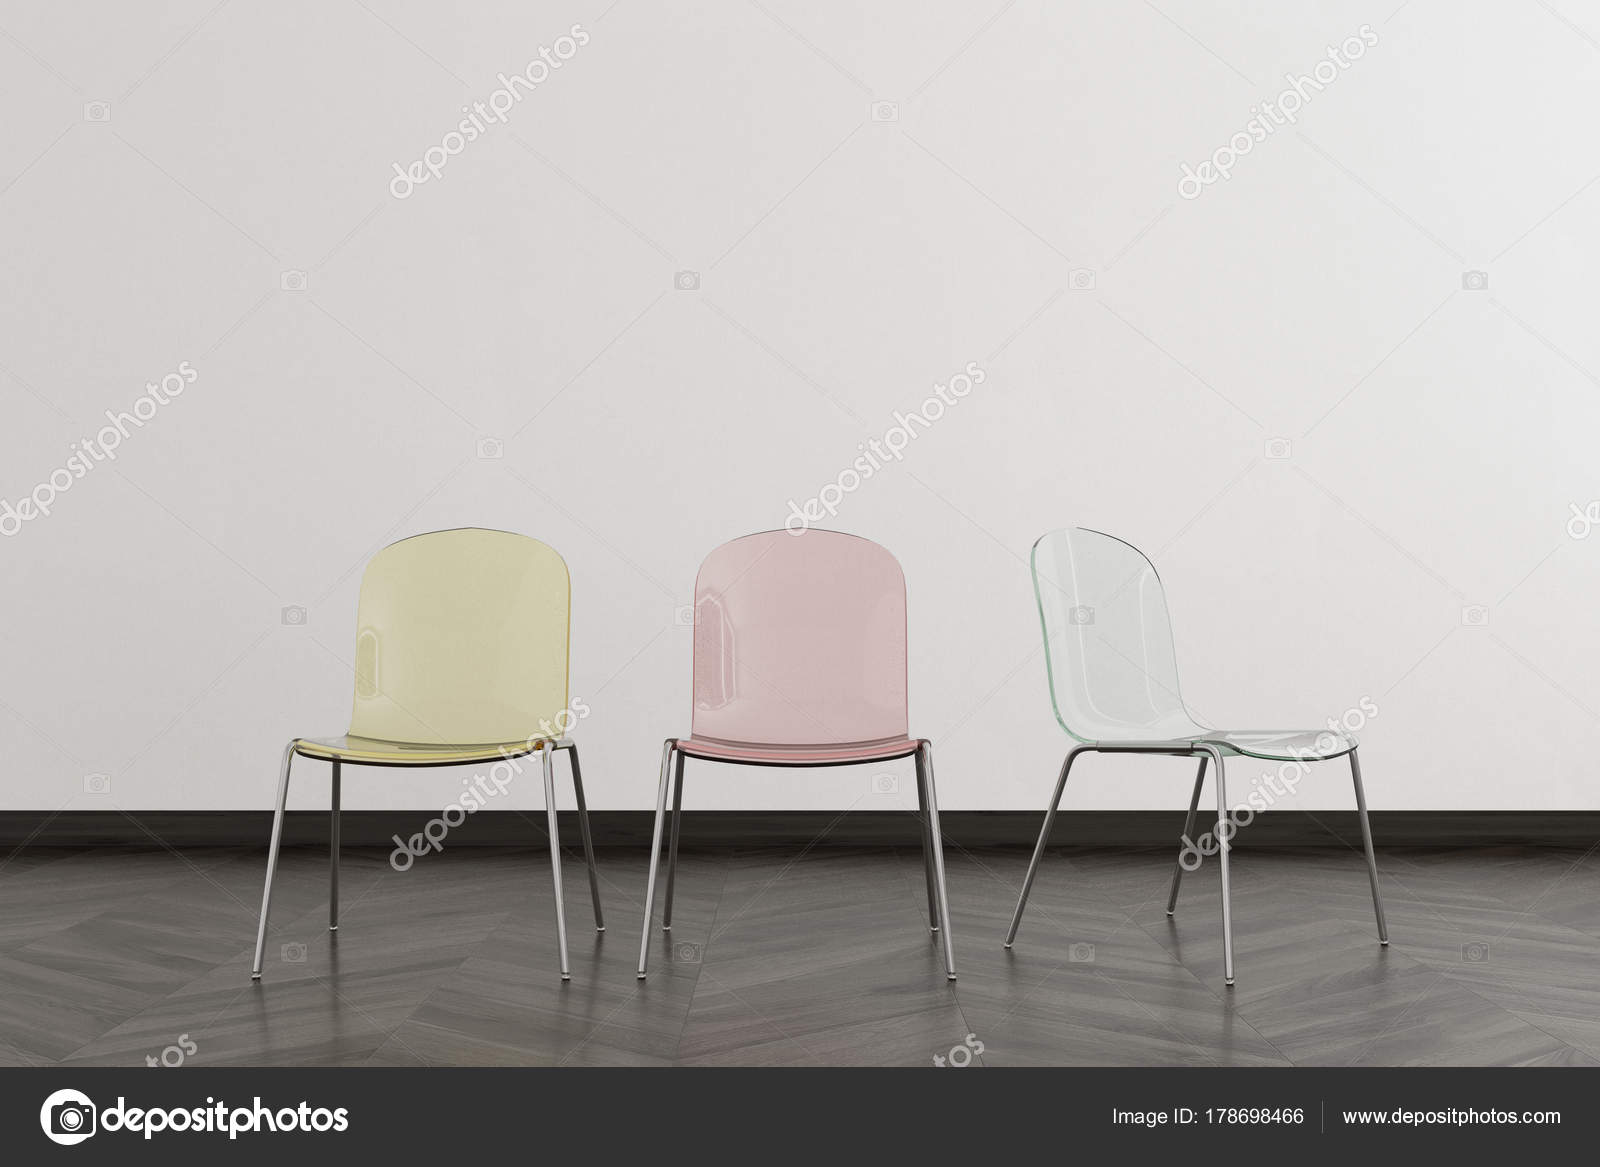 Transparent Chairs In An Empty Room Stock Photo